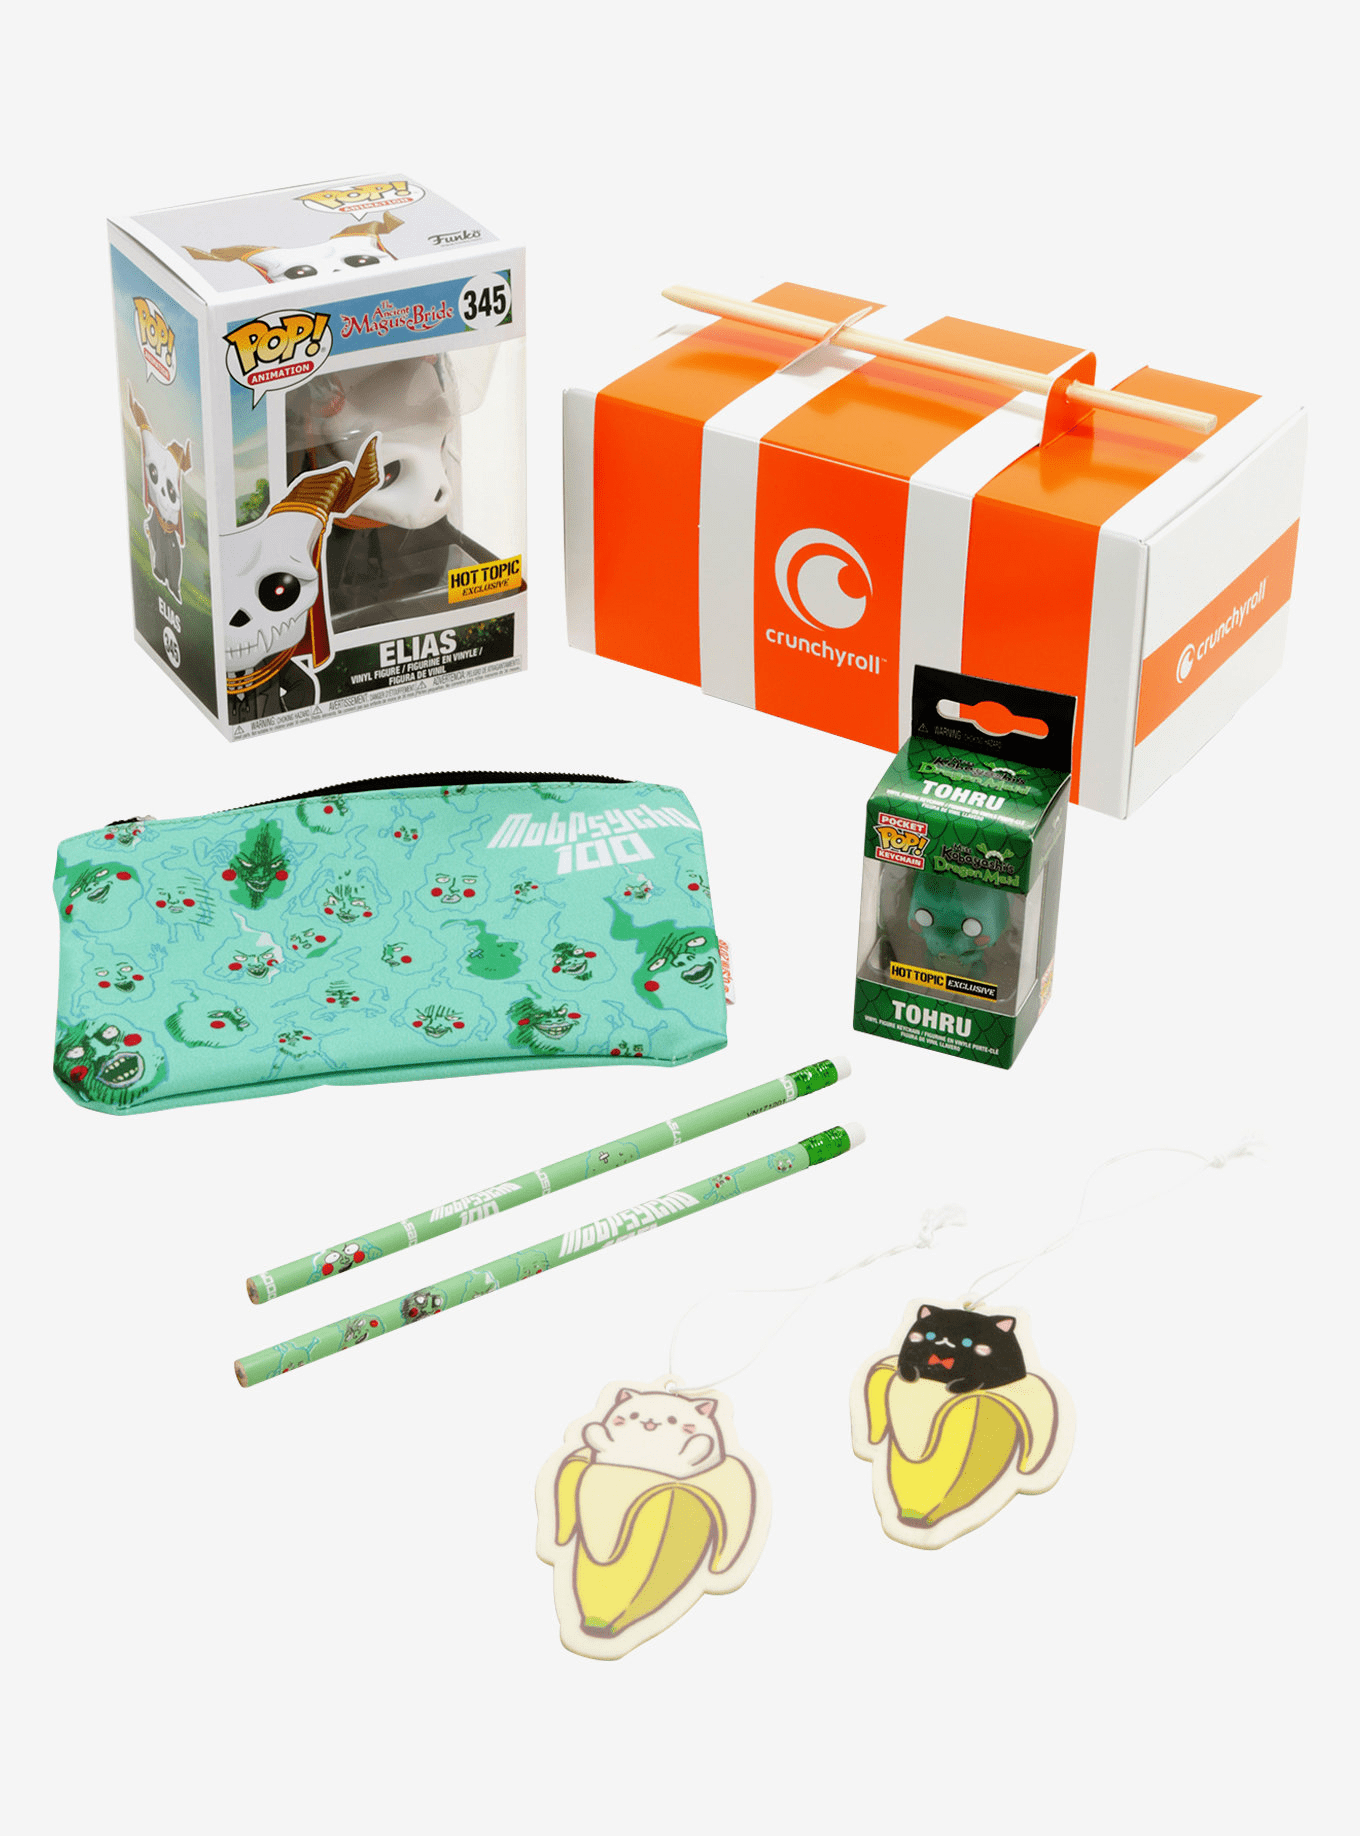 New Hot Topic Exclusive Crunchyroll Funko Collectible Box